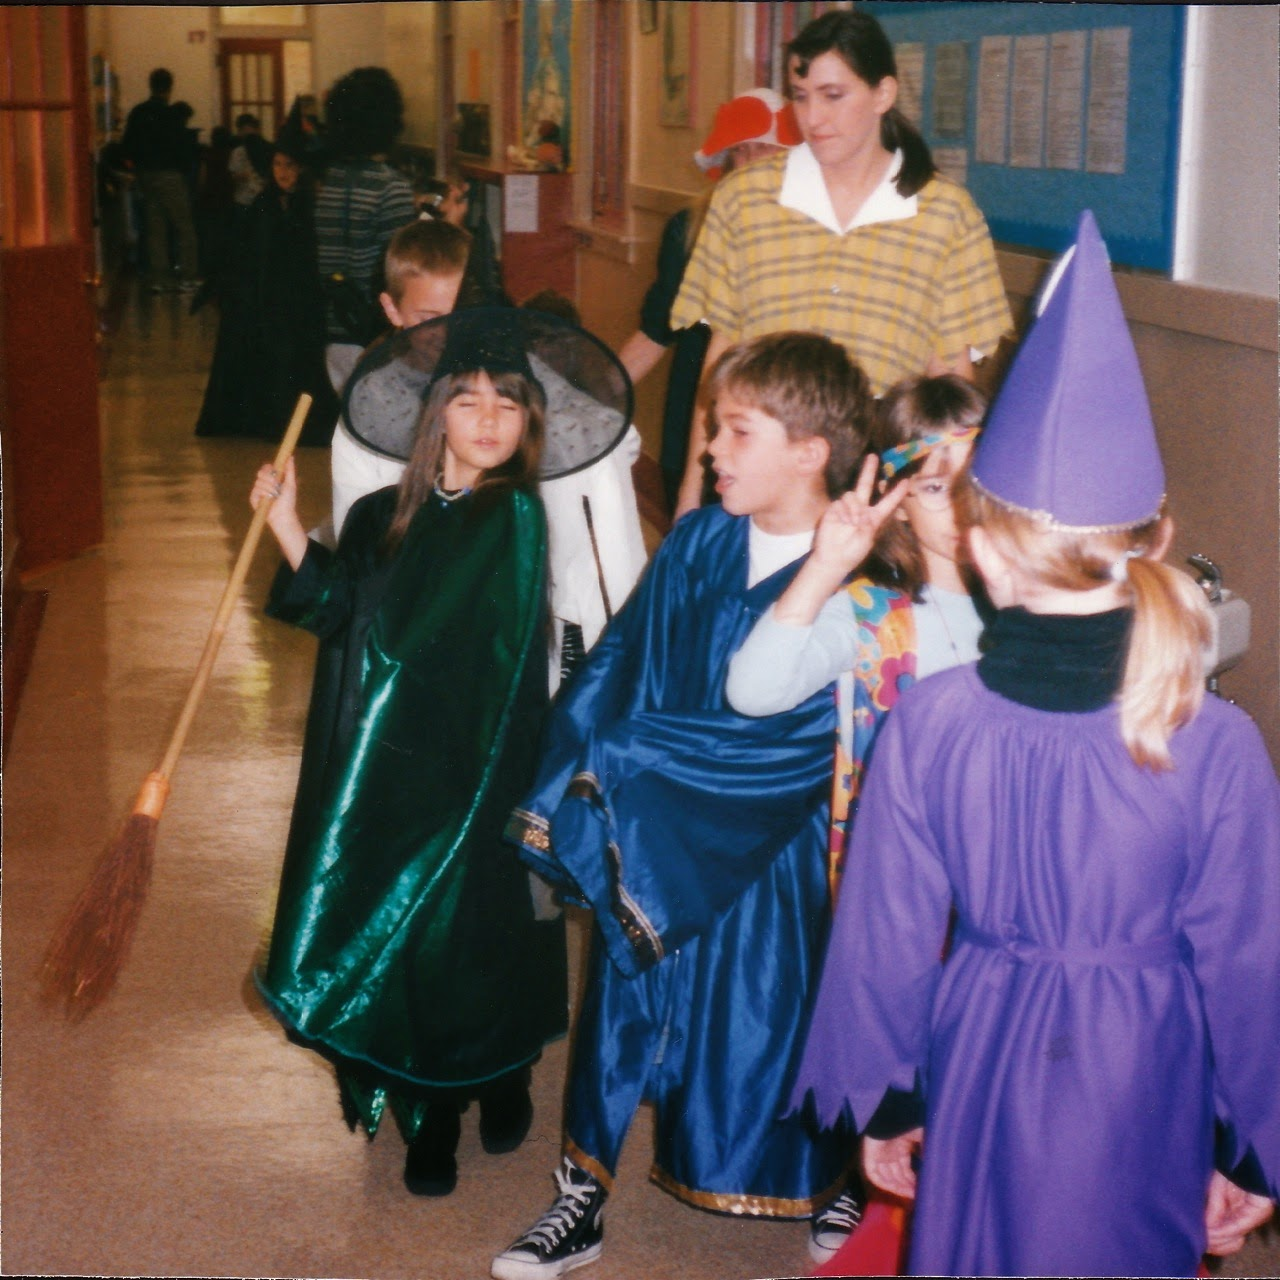 Eugene, Oregon, witch, jedi, hallway, teacher, students, 3rd grade class, 4J, Lane